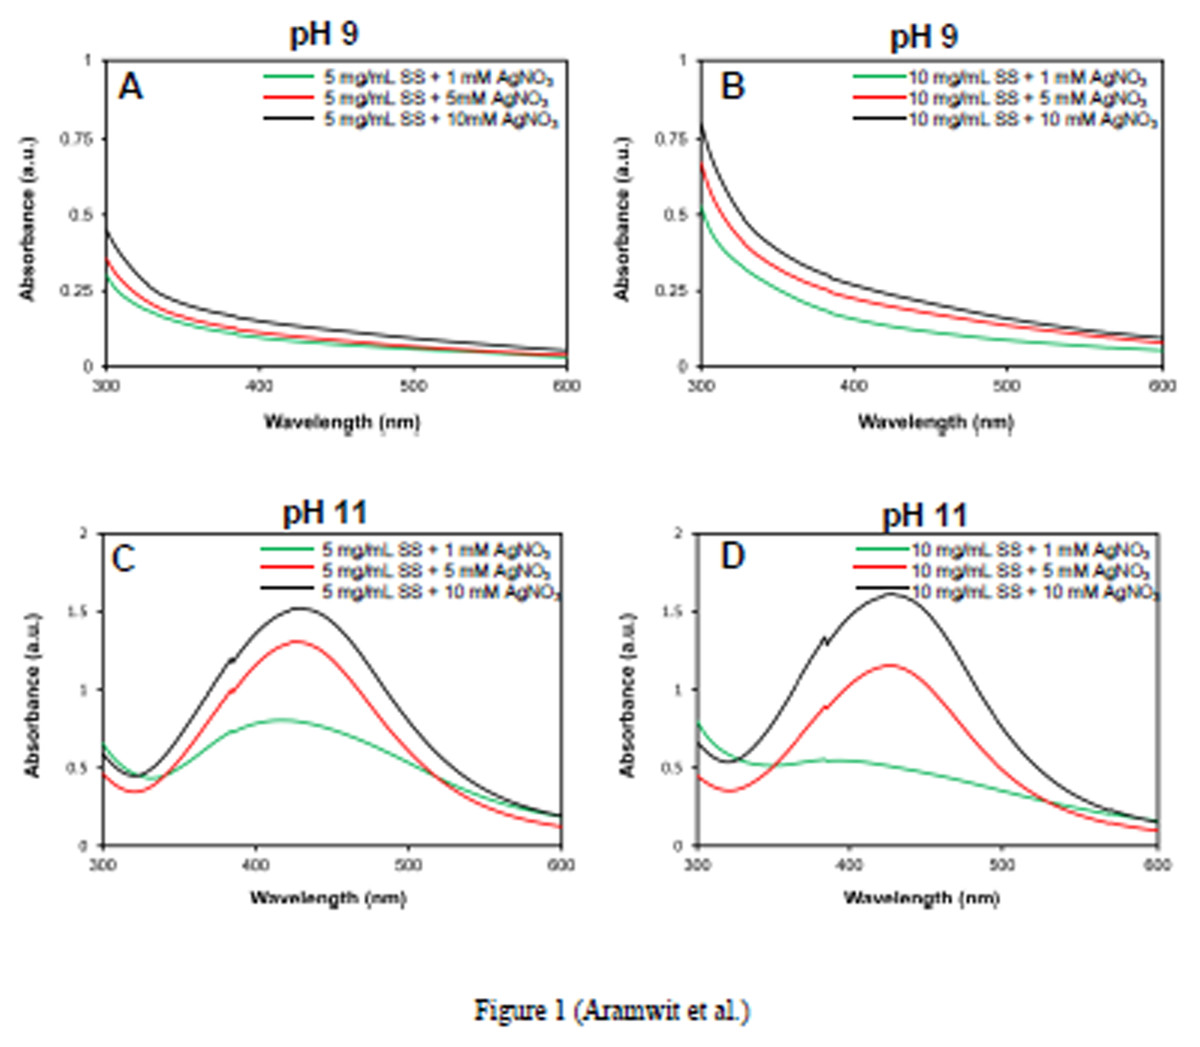 http://static-content.springer.com/image/art%3A10.1186%2F1556-276X-9-79/MediaObjects/11671_2013_Article_2431_Fig1_HTML.jpg